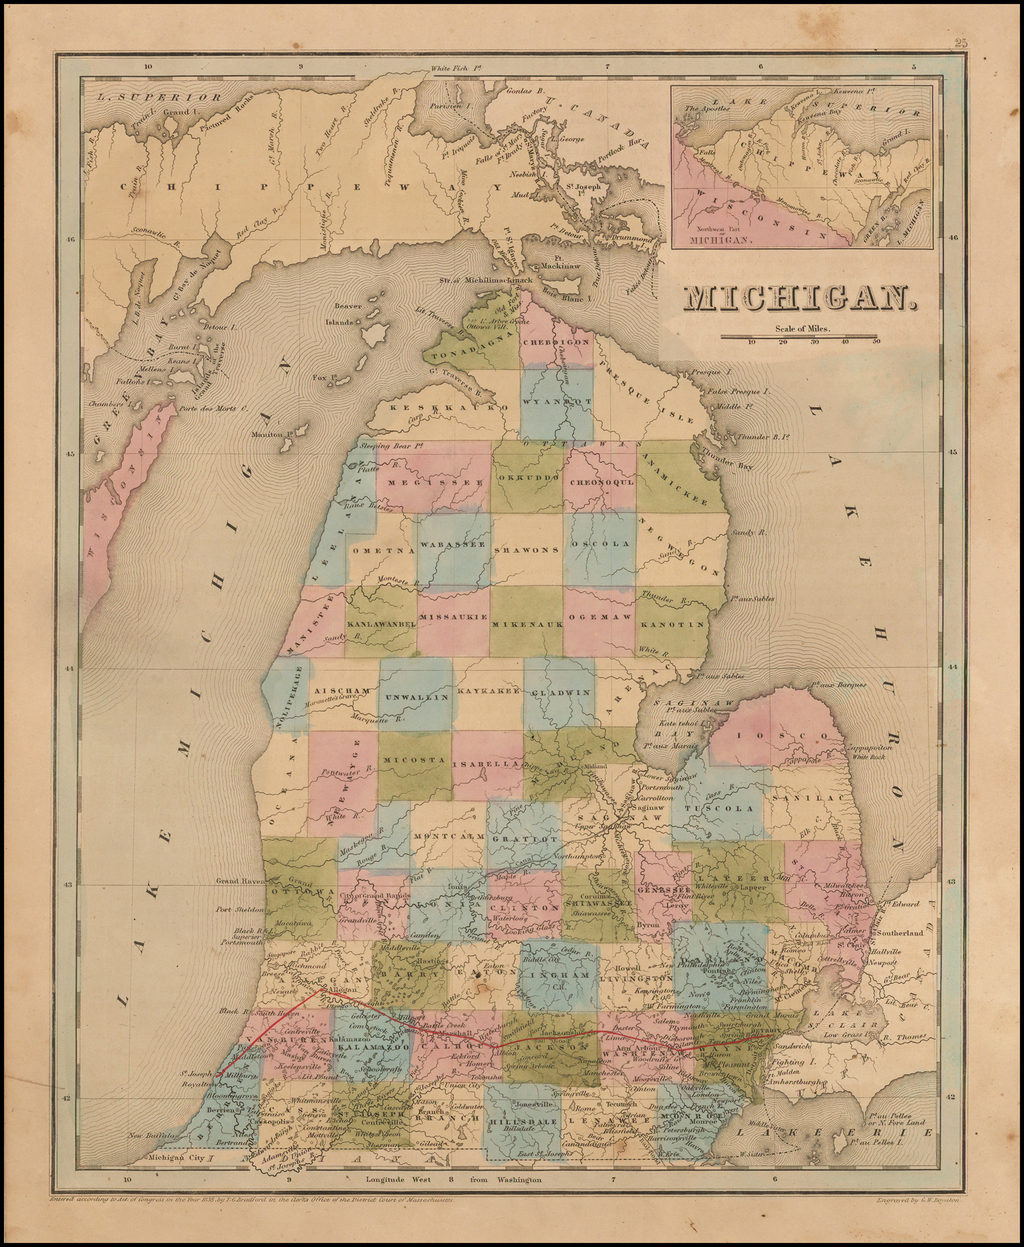 Michigan By Thomas Gamaliel Bradford